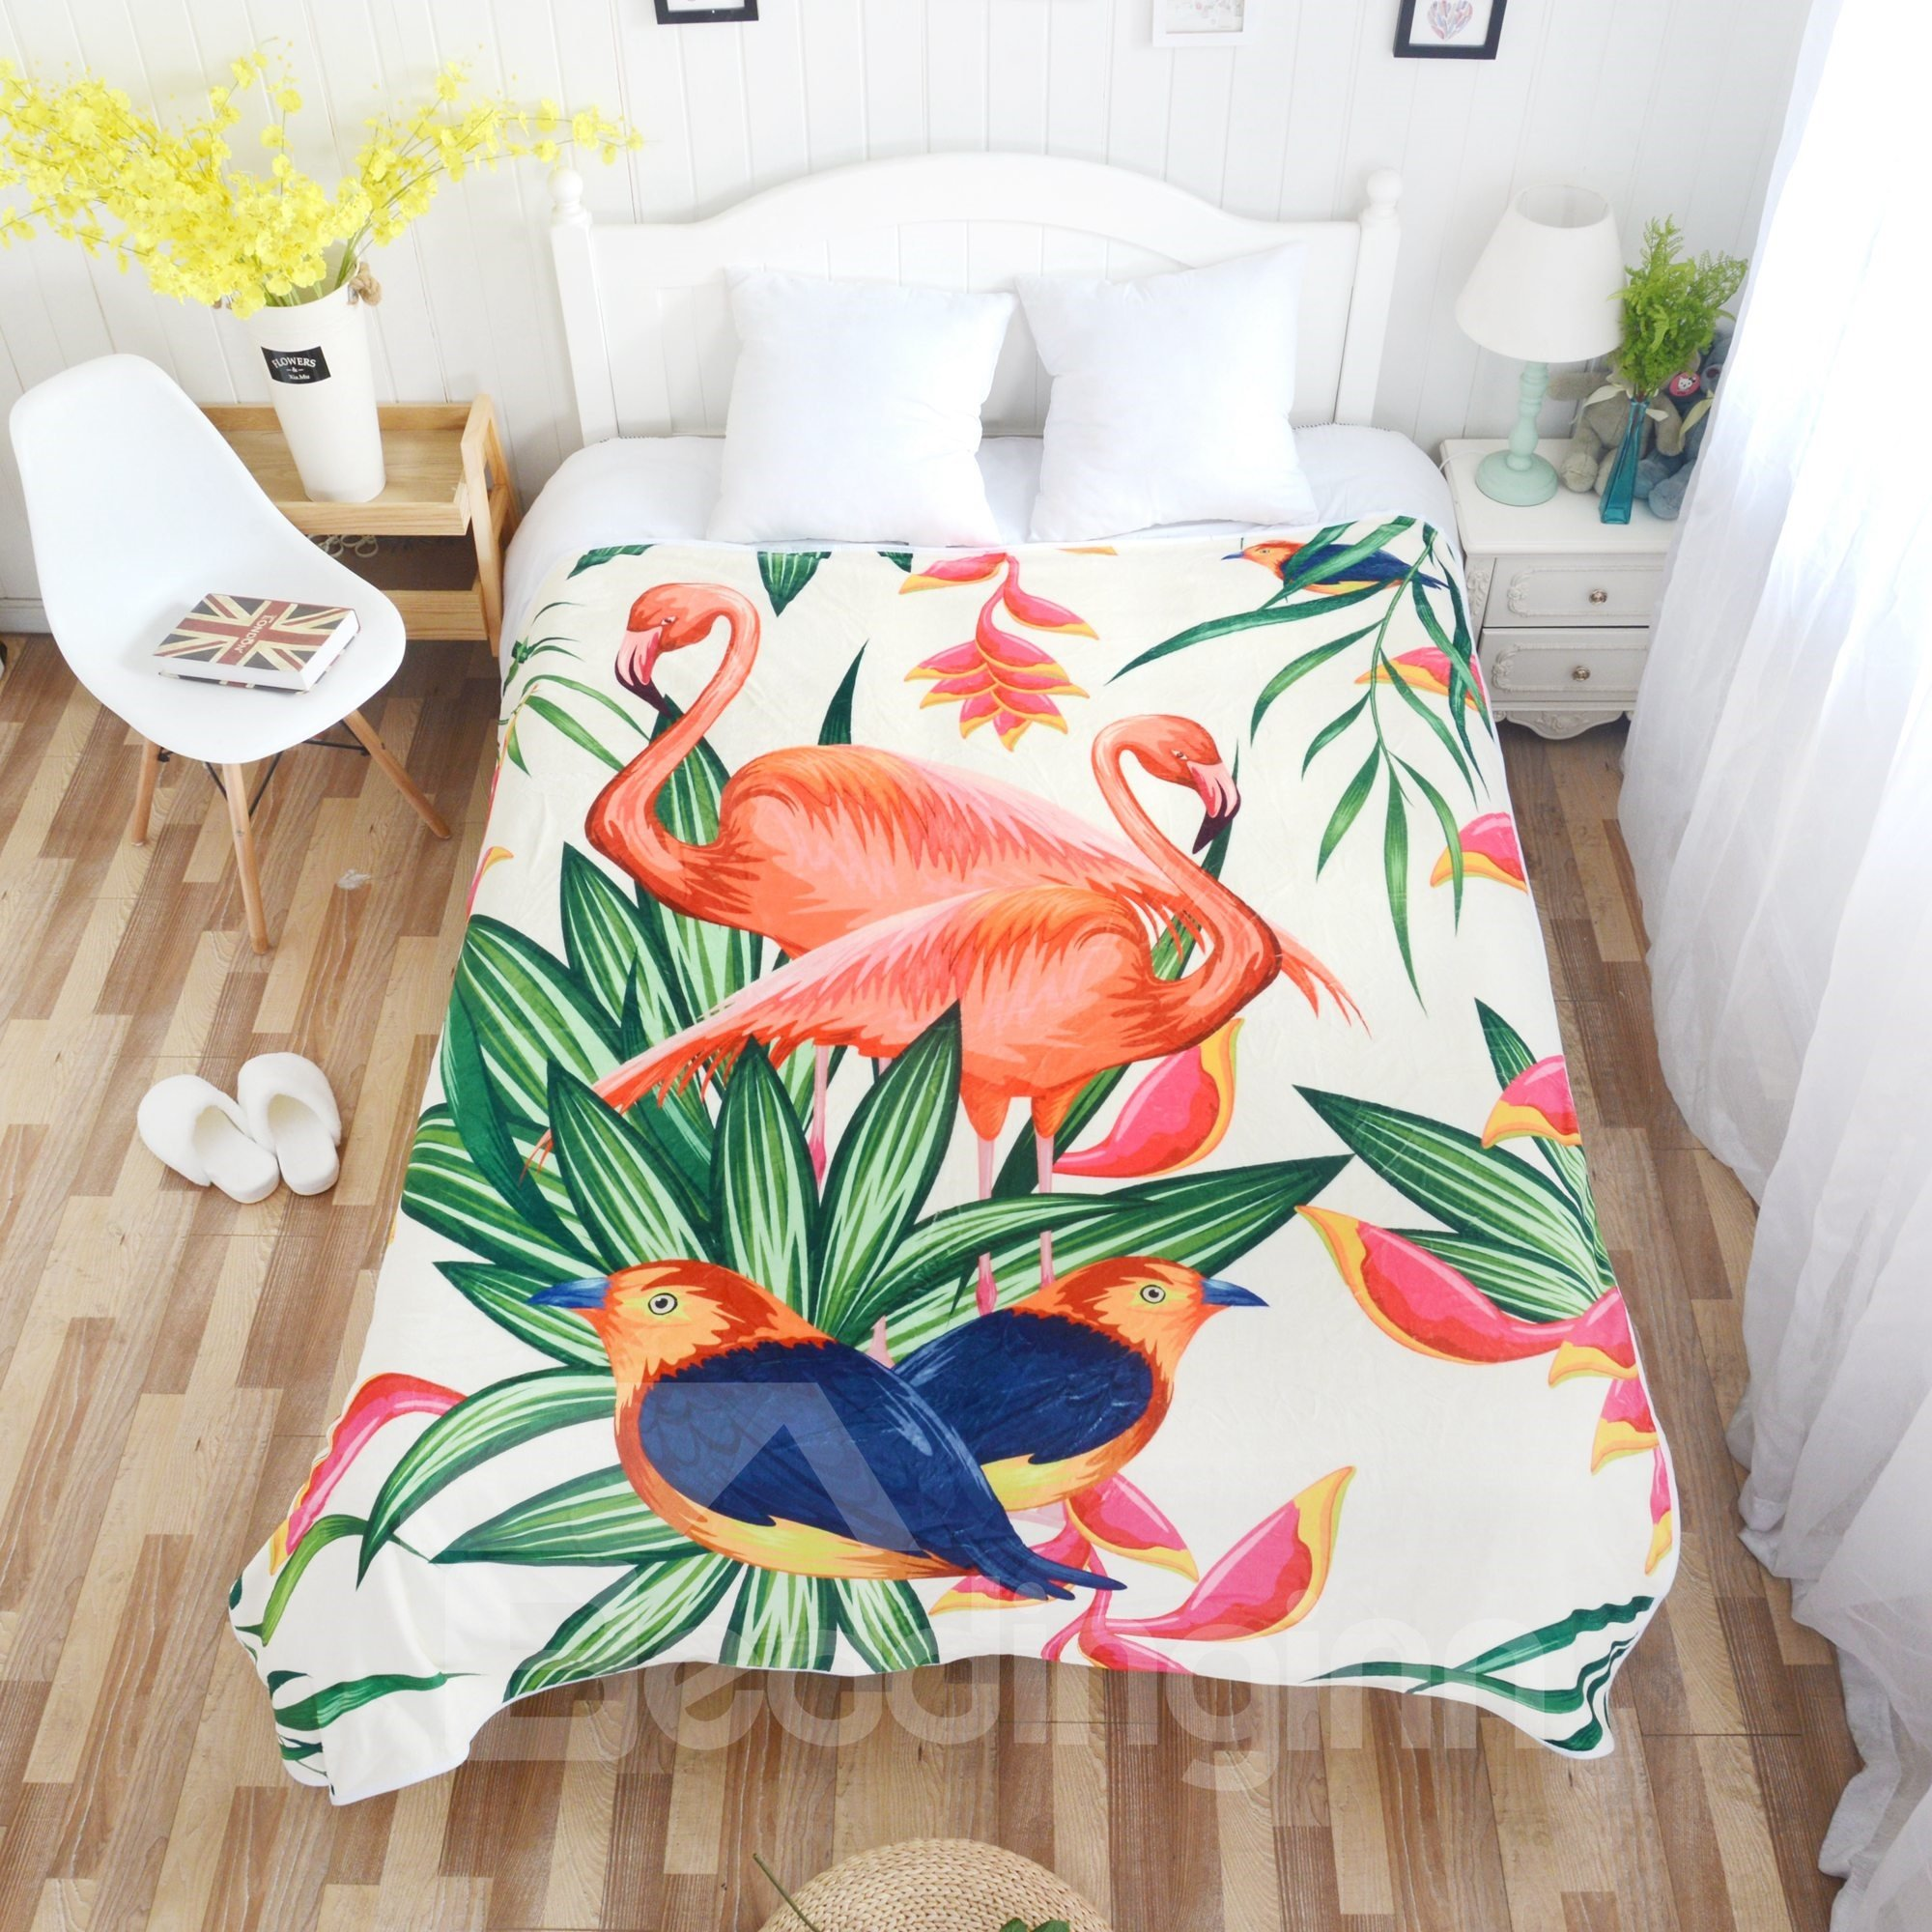 Tropical Flamingos and Birds Pattern Super Soft Flannel Bed